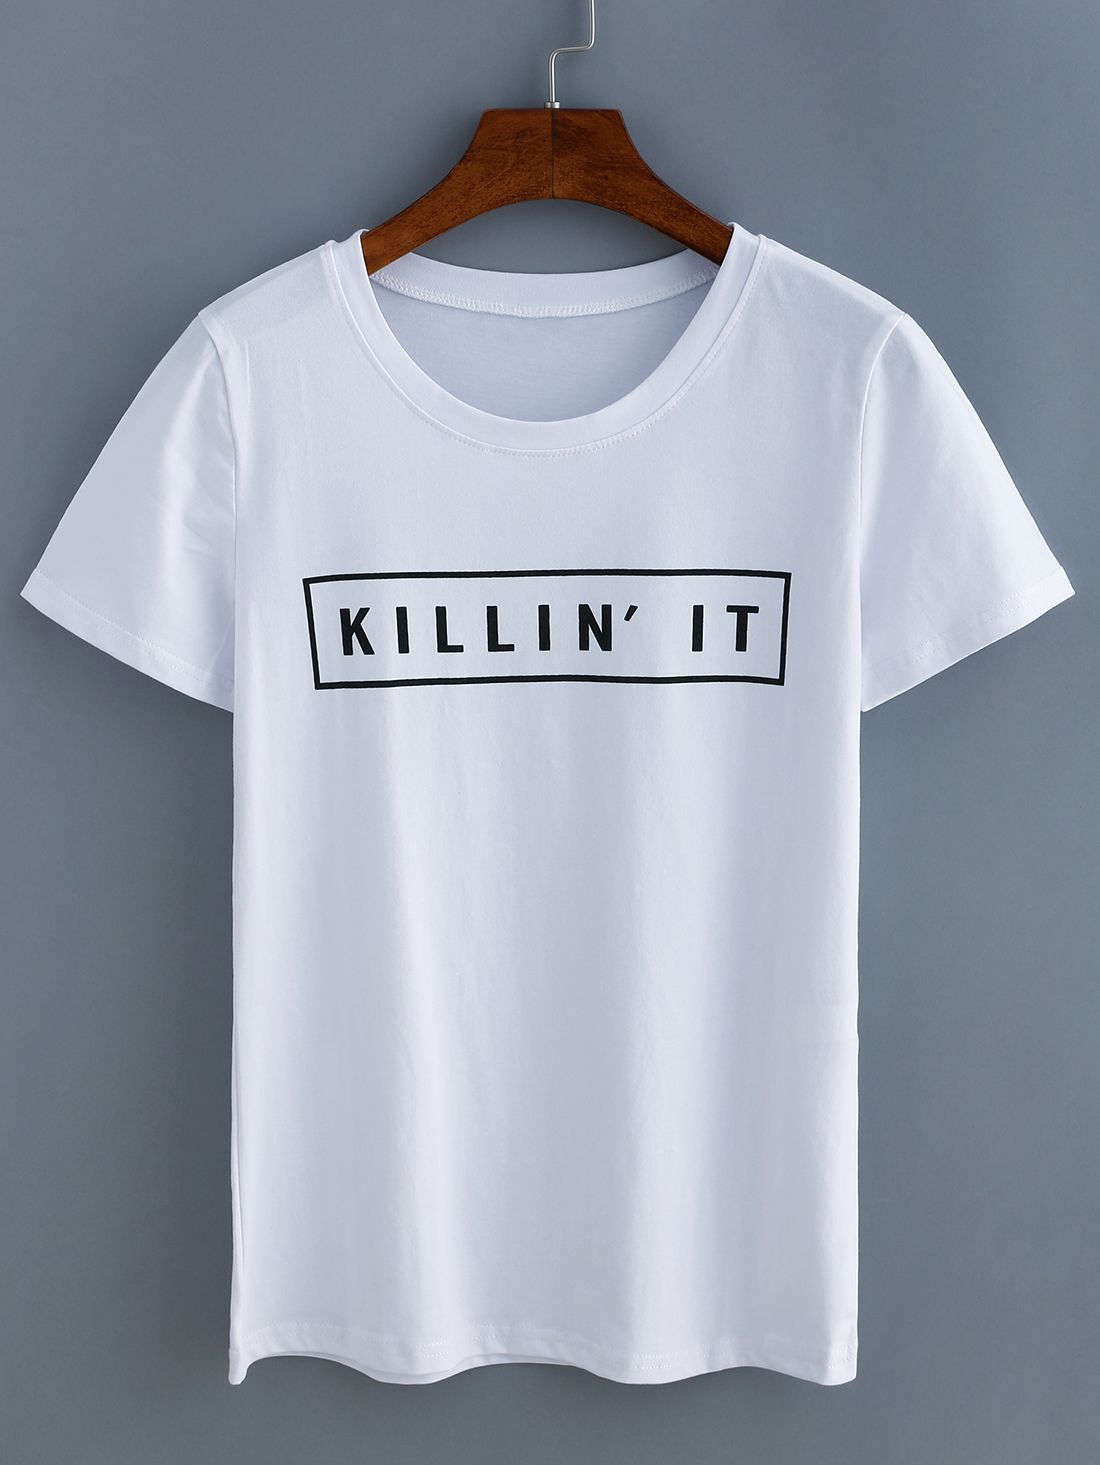 White  t shirt letter printed Womens Mens shirt unissex fashion style hipster